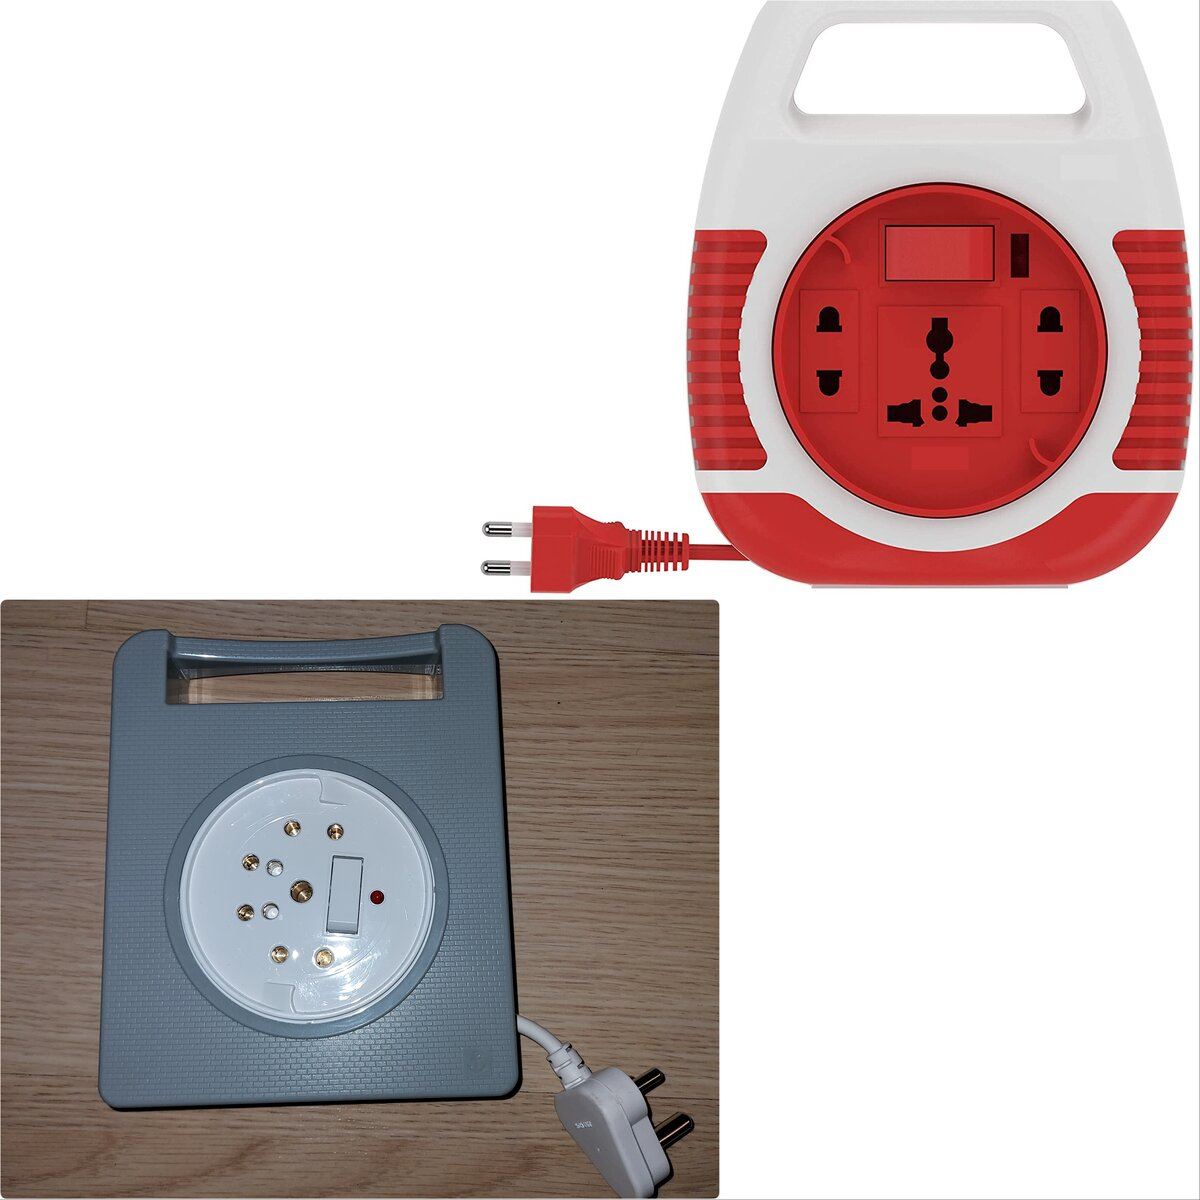 (For illustration purpose only) The one on top with bright red-colour shows the Universal sockets which are not followed in India but still sold in India. The one in the bottom has the BS 546 plugs with round pins